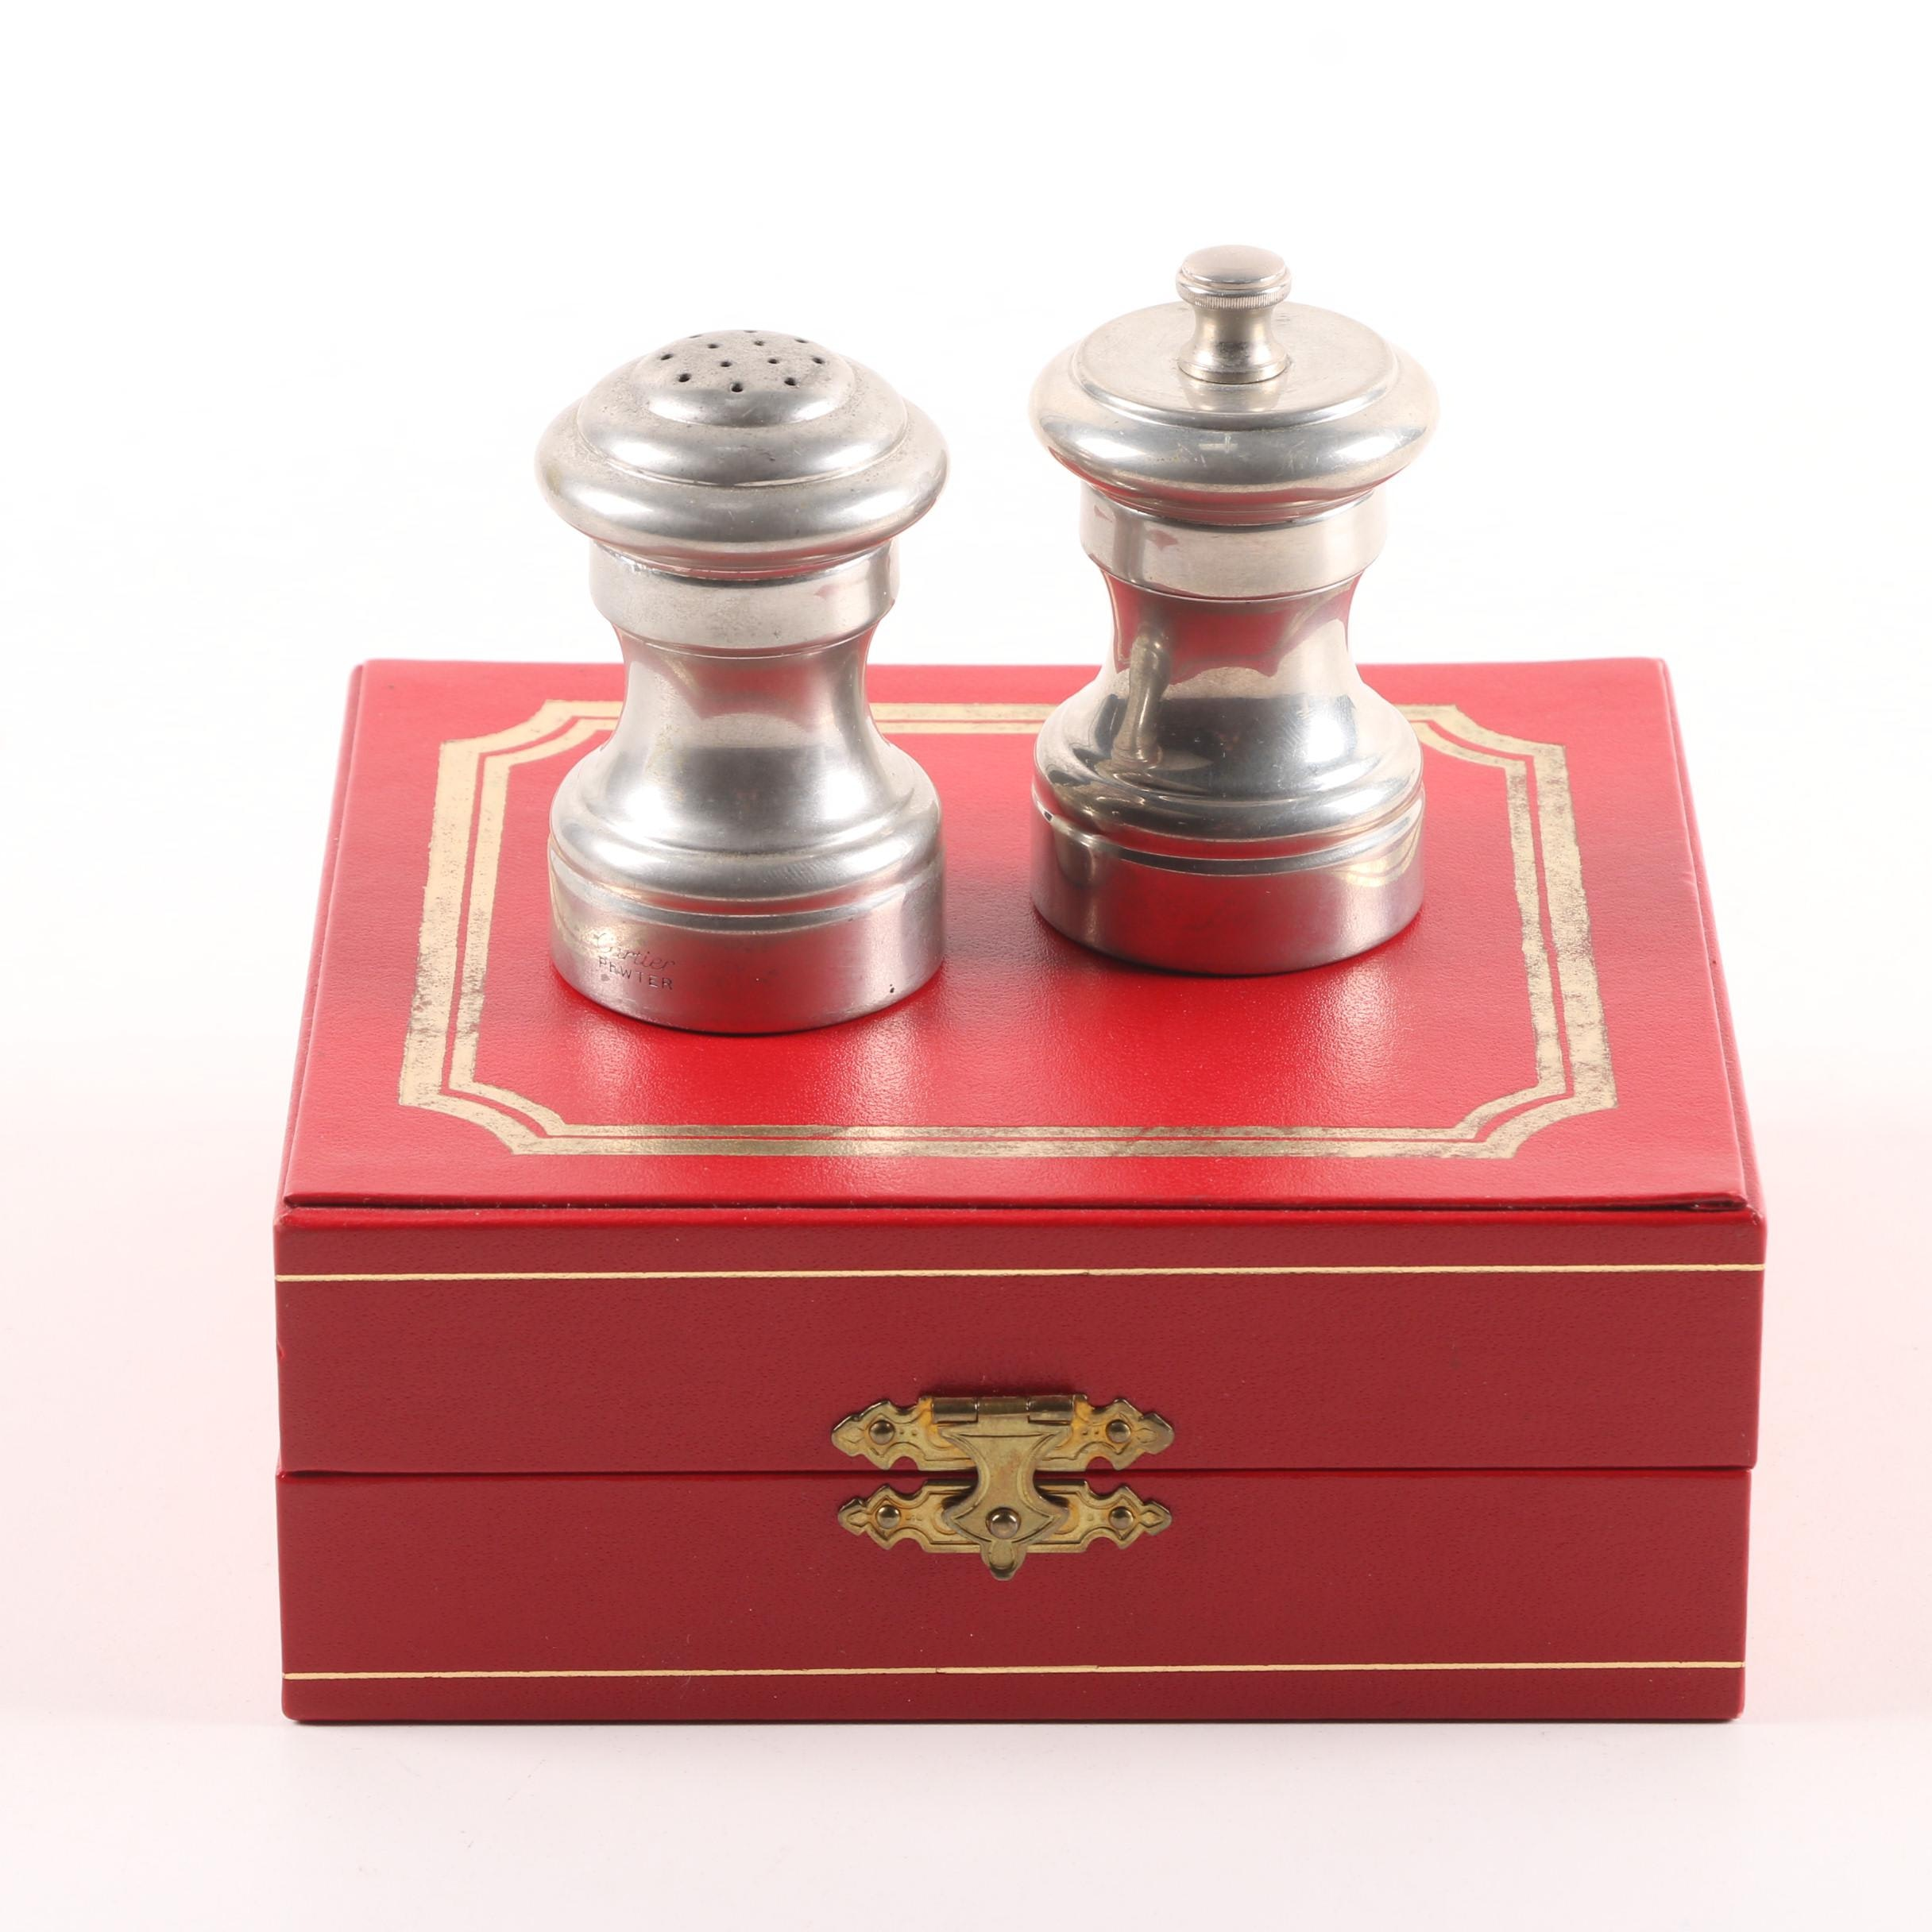 Cartier Pewter Salt Shaker and Pepper Mill